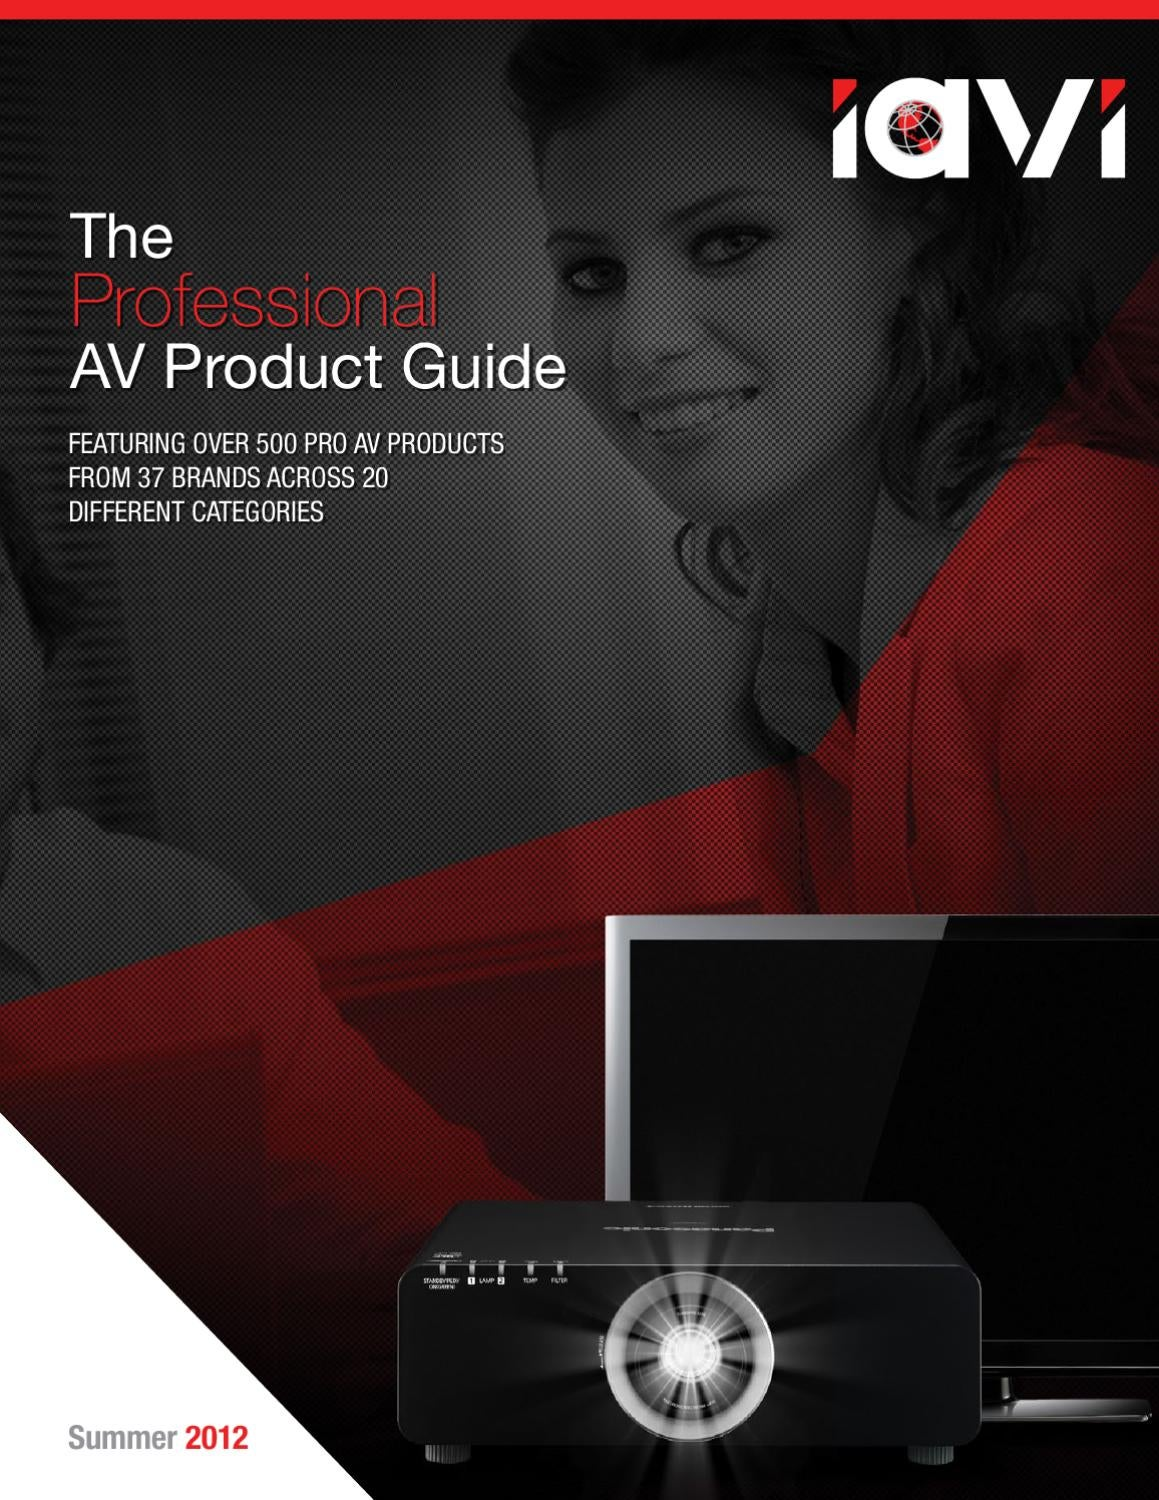 Iavi Summer 2012 Product Catalog By James Kupczak Issuu As All Wireless Control System Ultrasonic Lampbrightness Controller